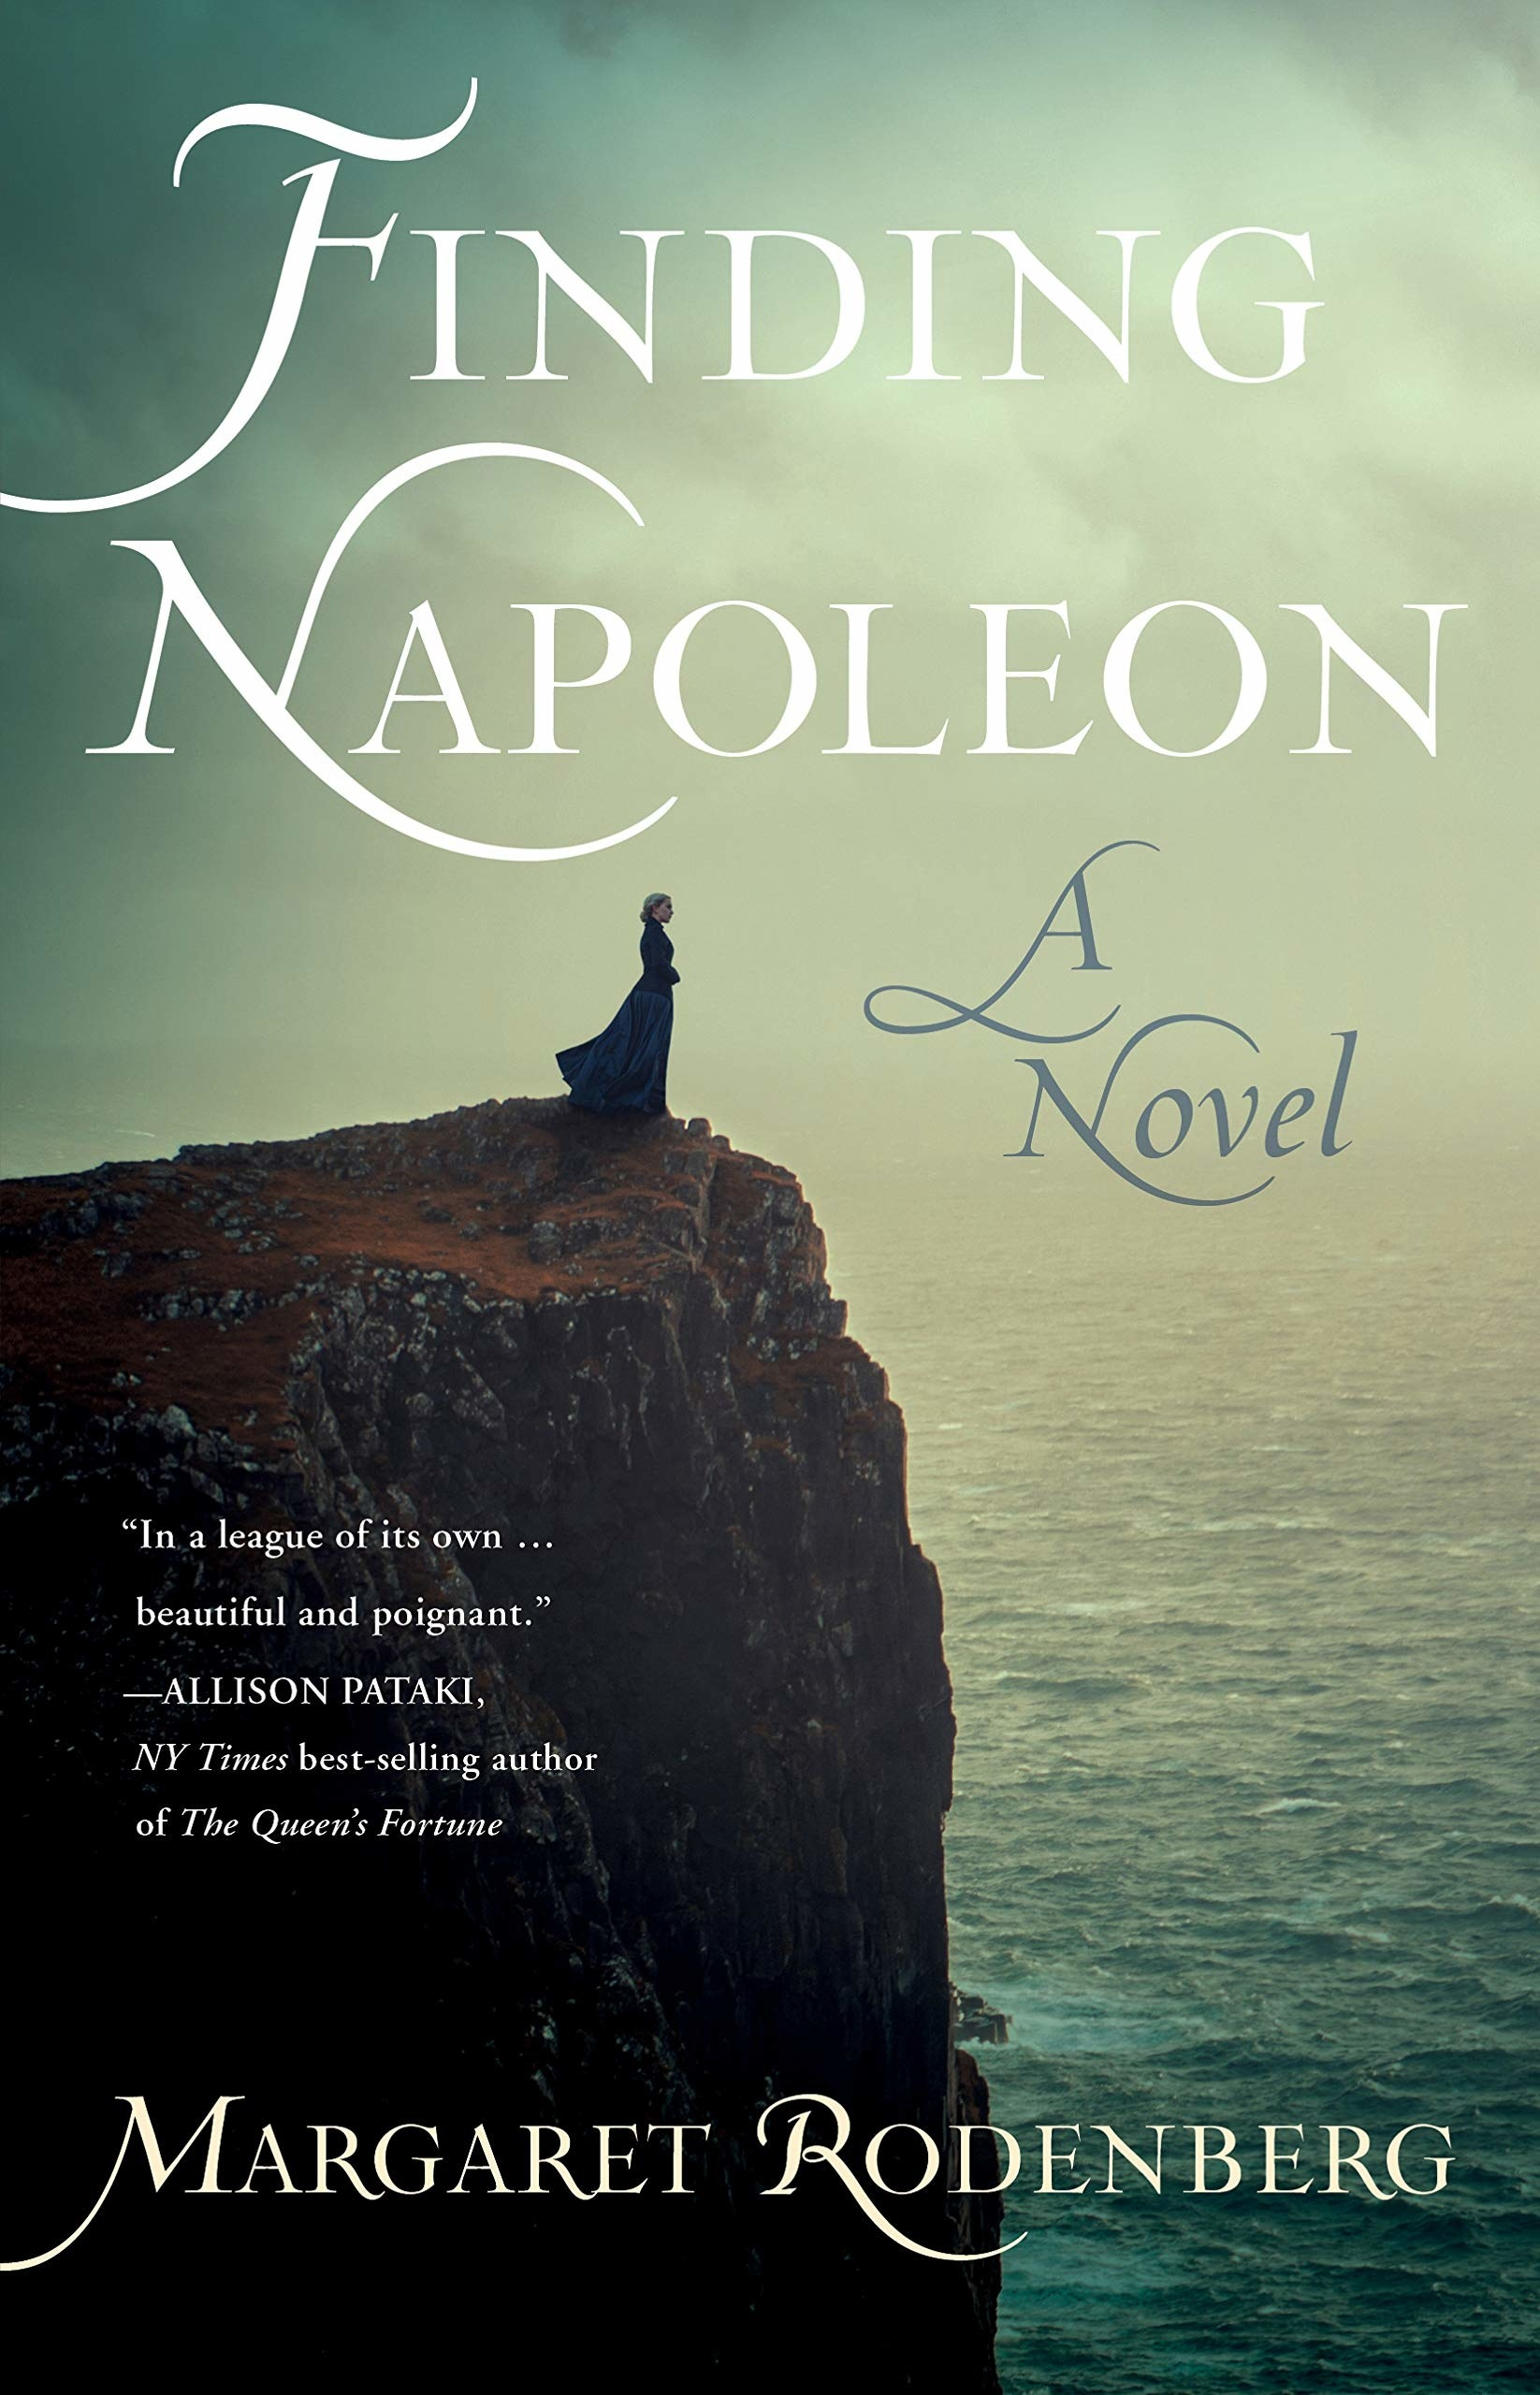 cover of the book with a woman standing over a cliff above a sea